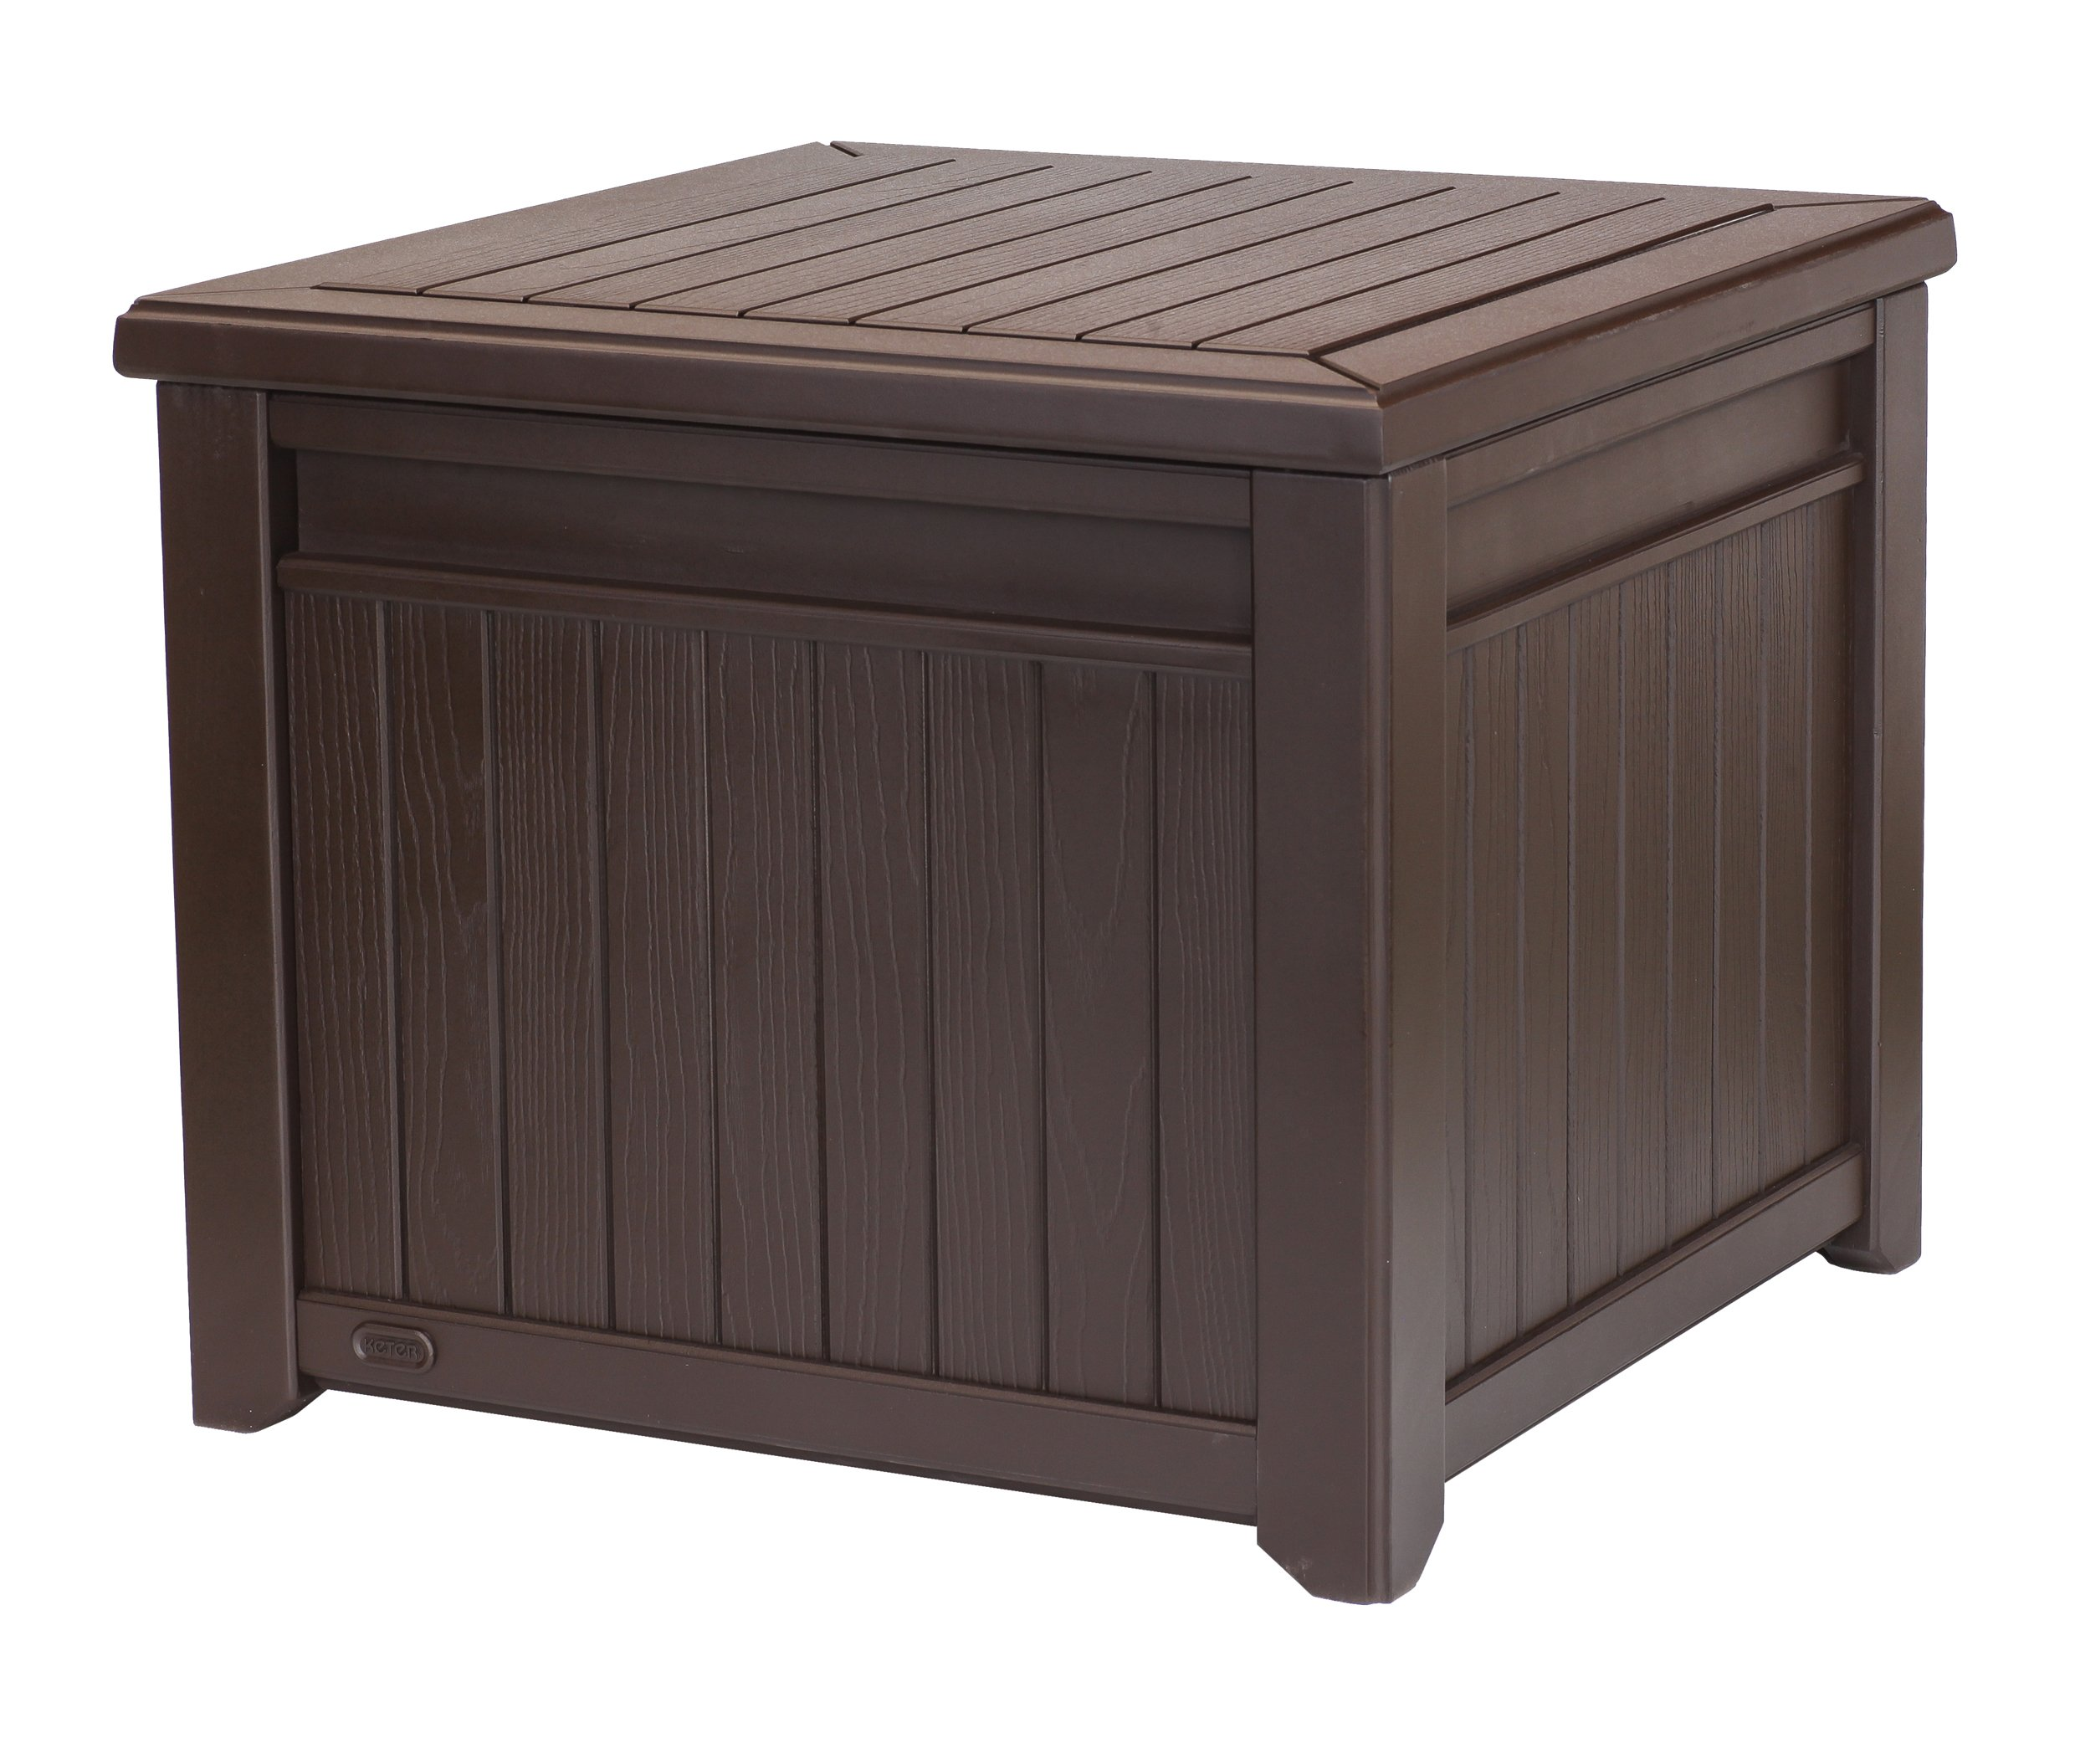 Keter Cube Wood-Look 55 Gallon All-Weather Garden Patio Storage Table or Bench